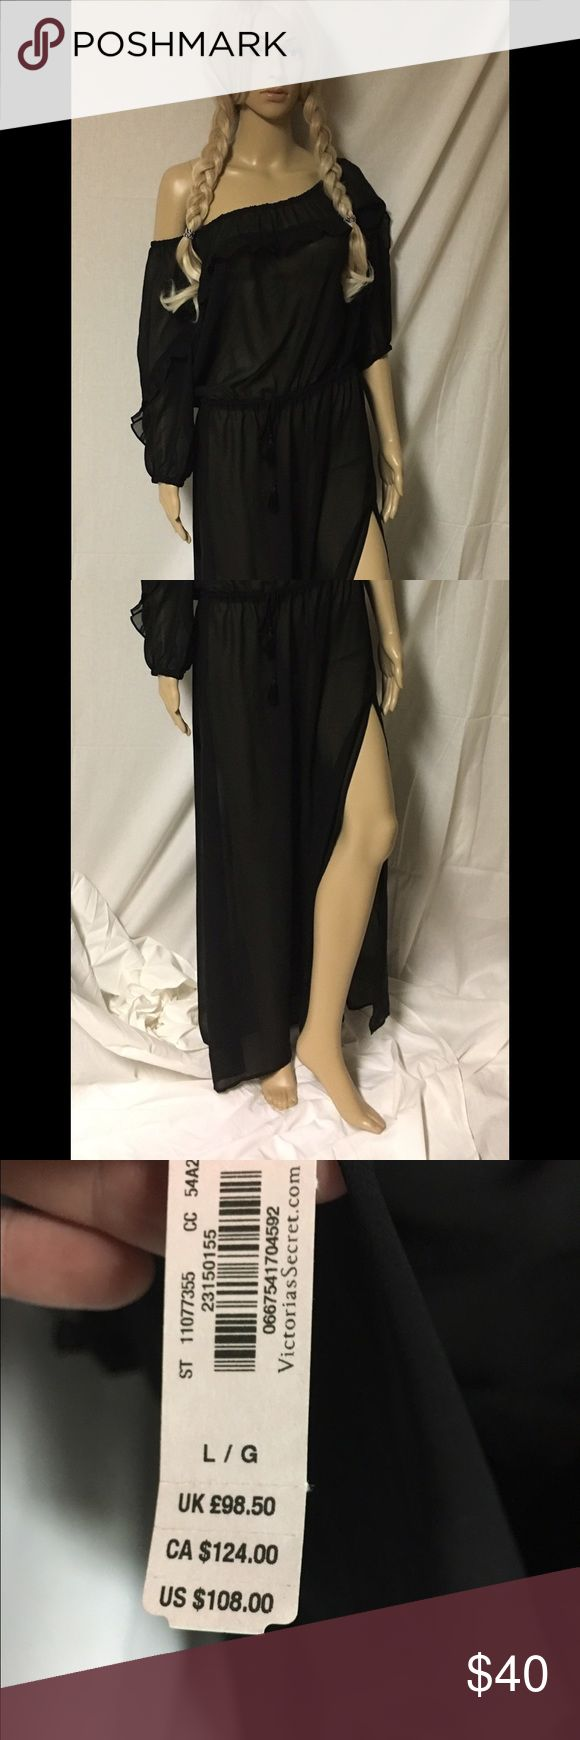 Victoria Secret long black cover up Large NWT, sheer long black cover up, Side slit Victoria's Secret Intimates & Sleepwear Chemises & Slips